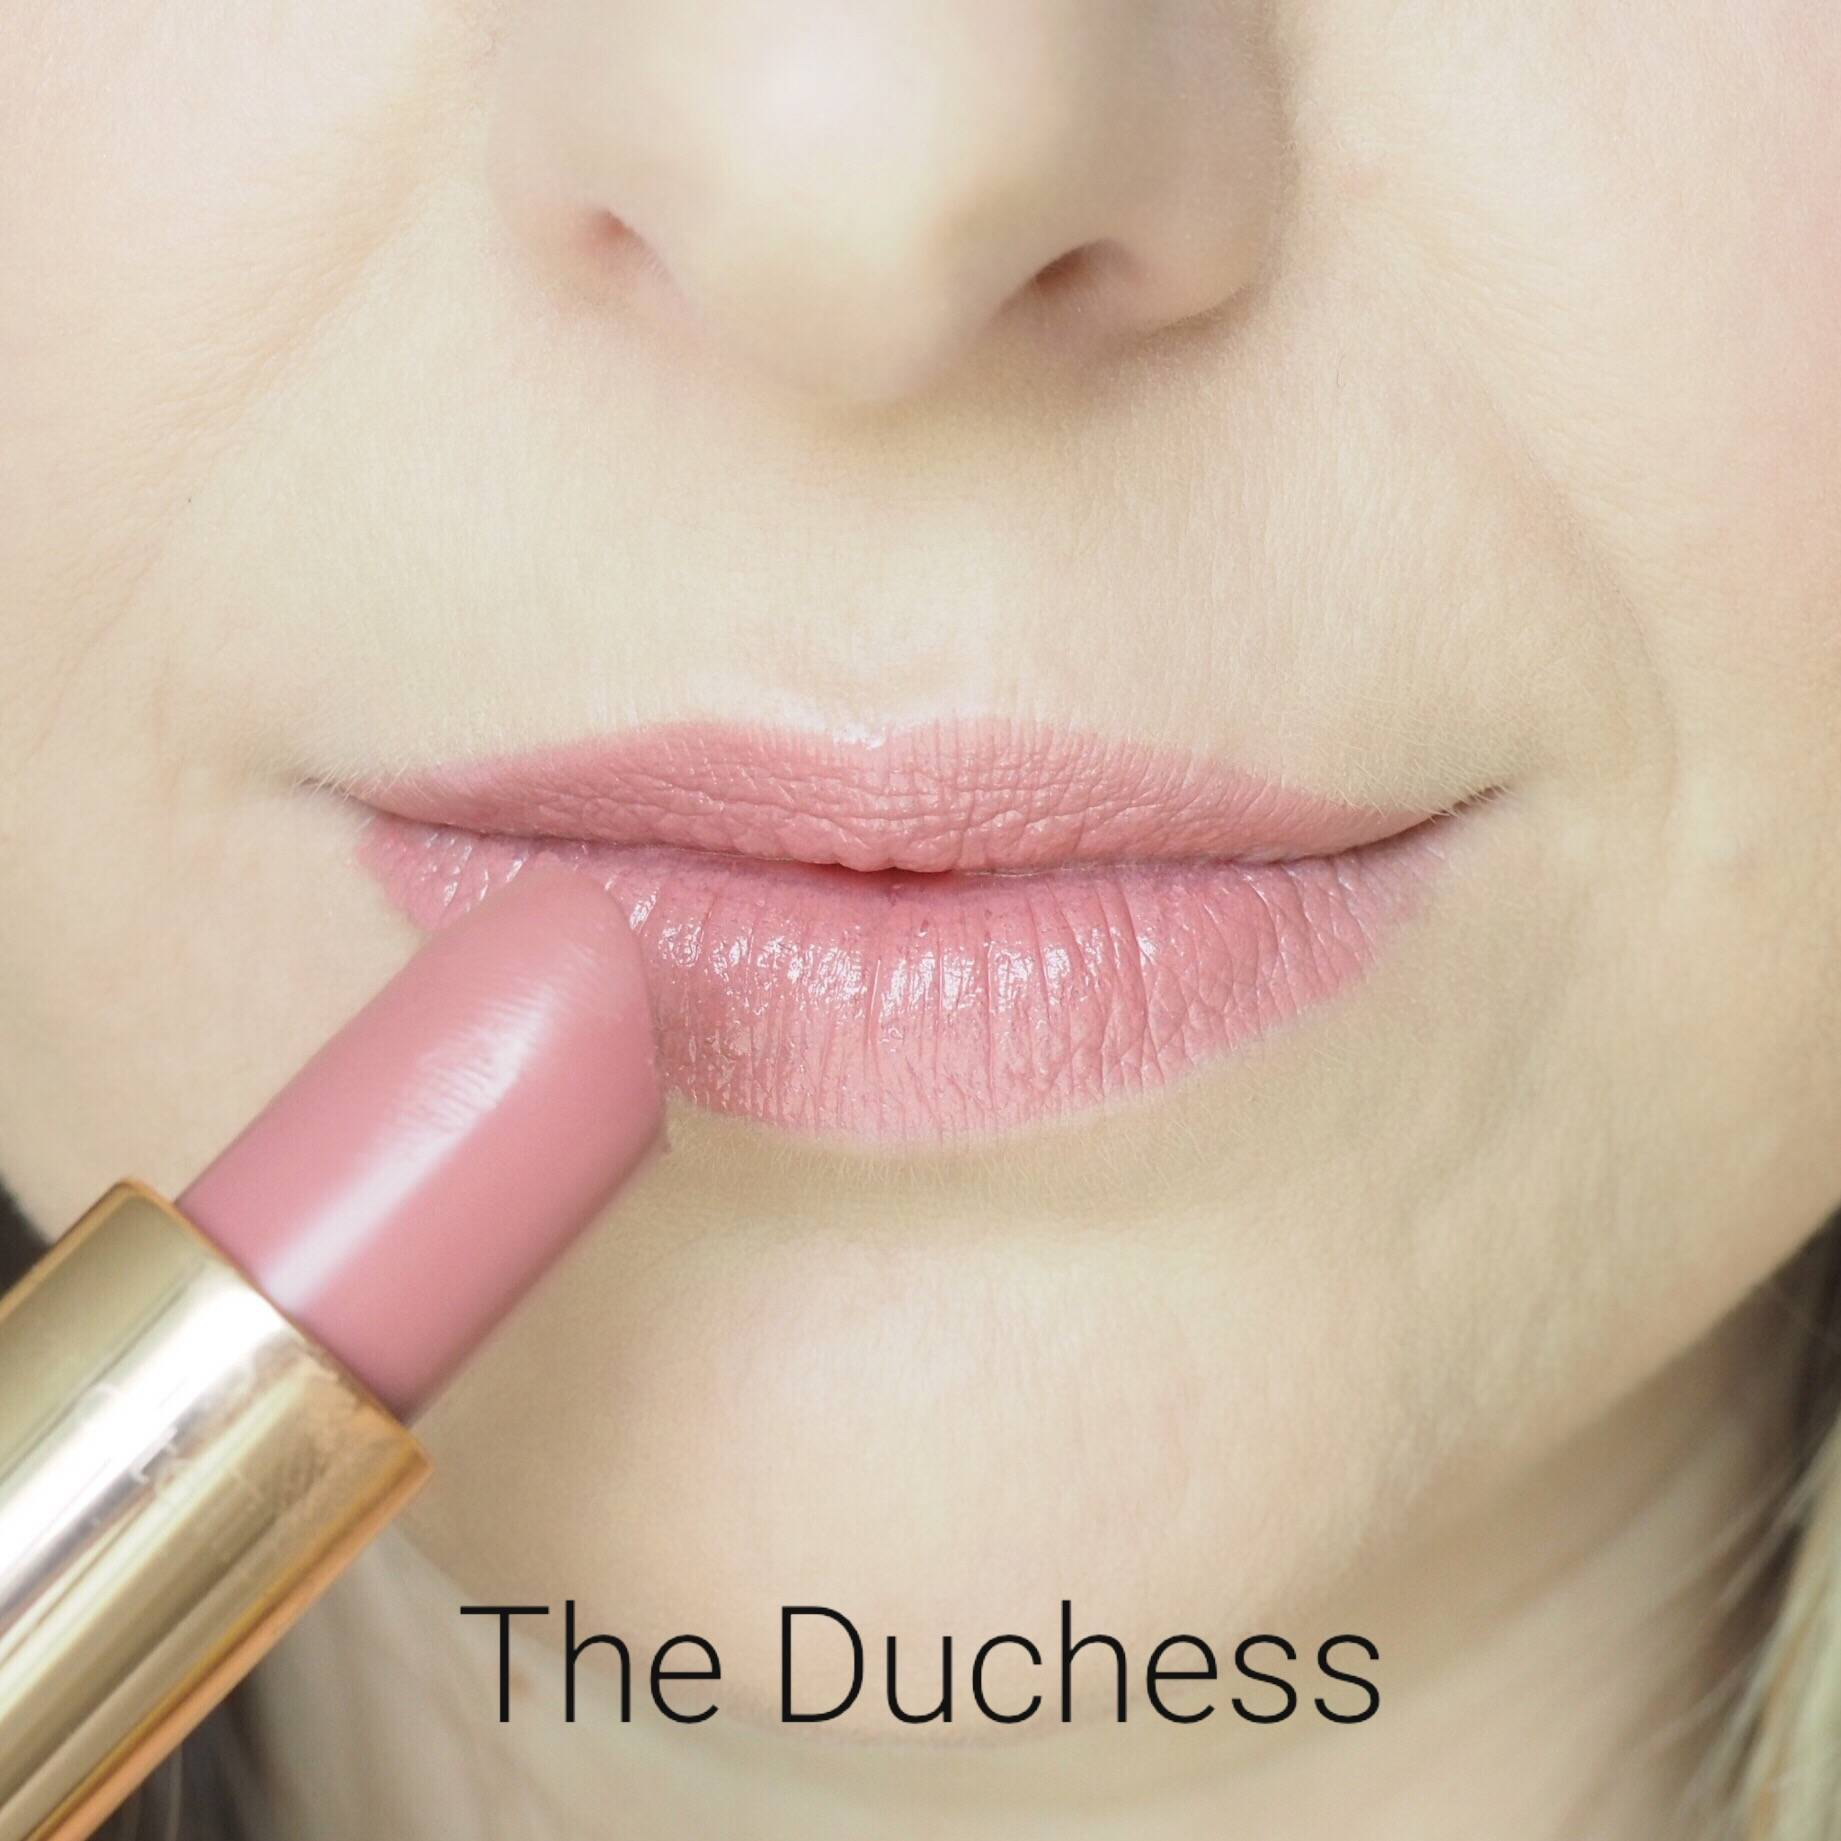 Charlotte Tilbury The Duchess Lipstick Swatches